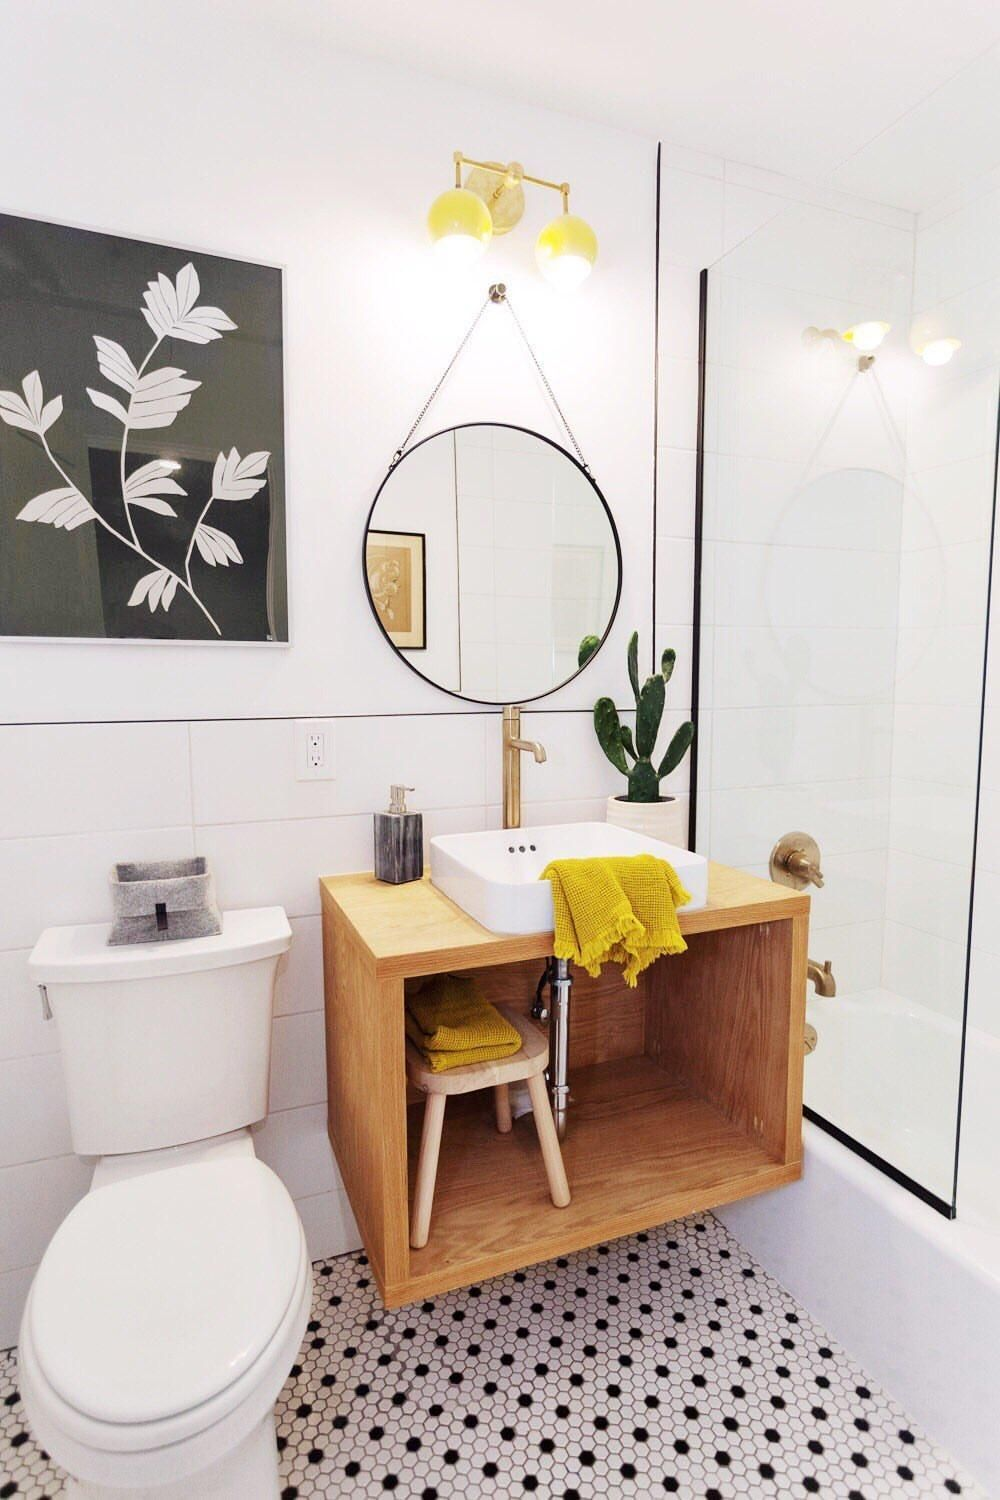 Photo of Mid Century modern bathroom renovation with yellow accents